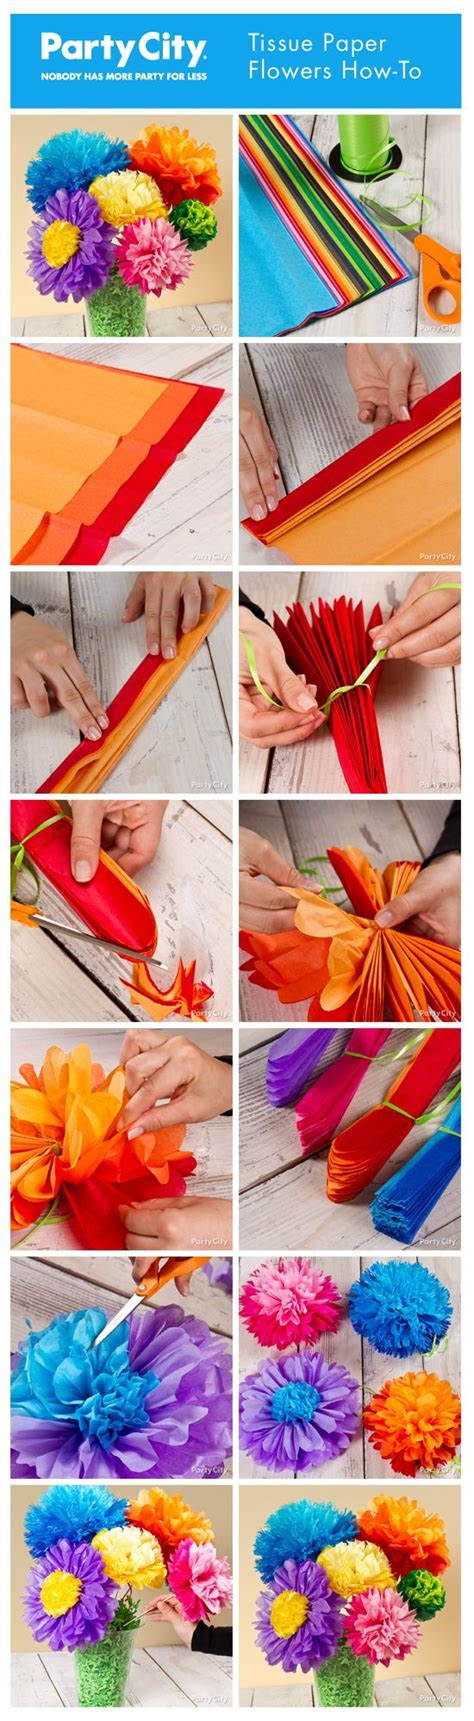 Tissue Paper Flowers Step By Step - how to make pretty tissue paper flowers step by step